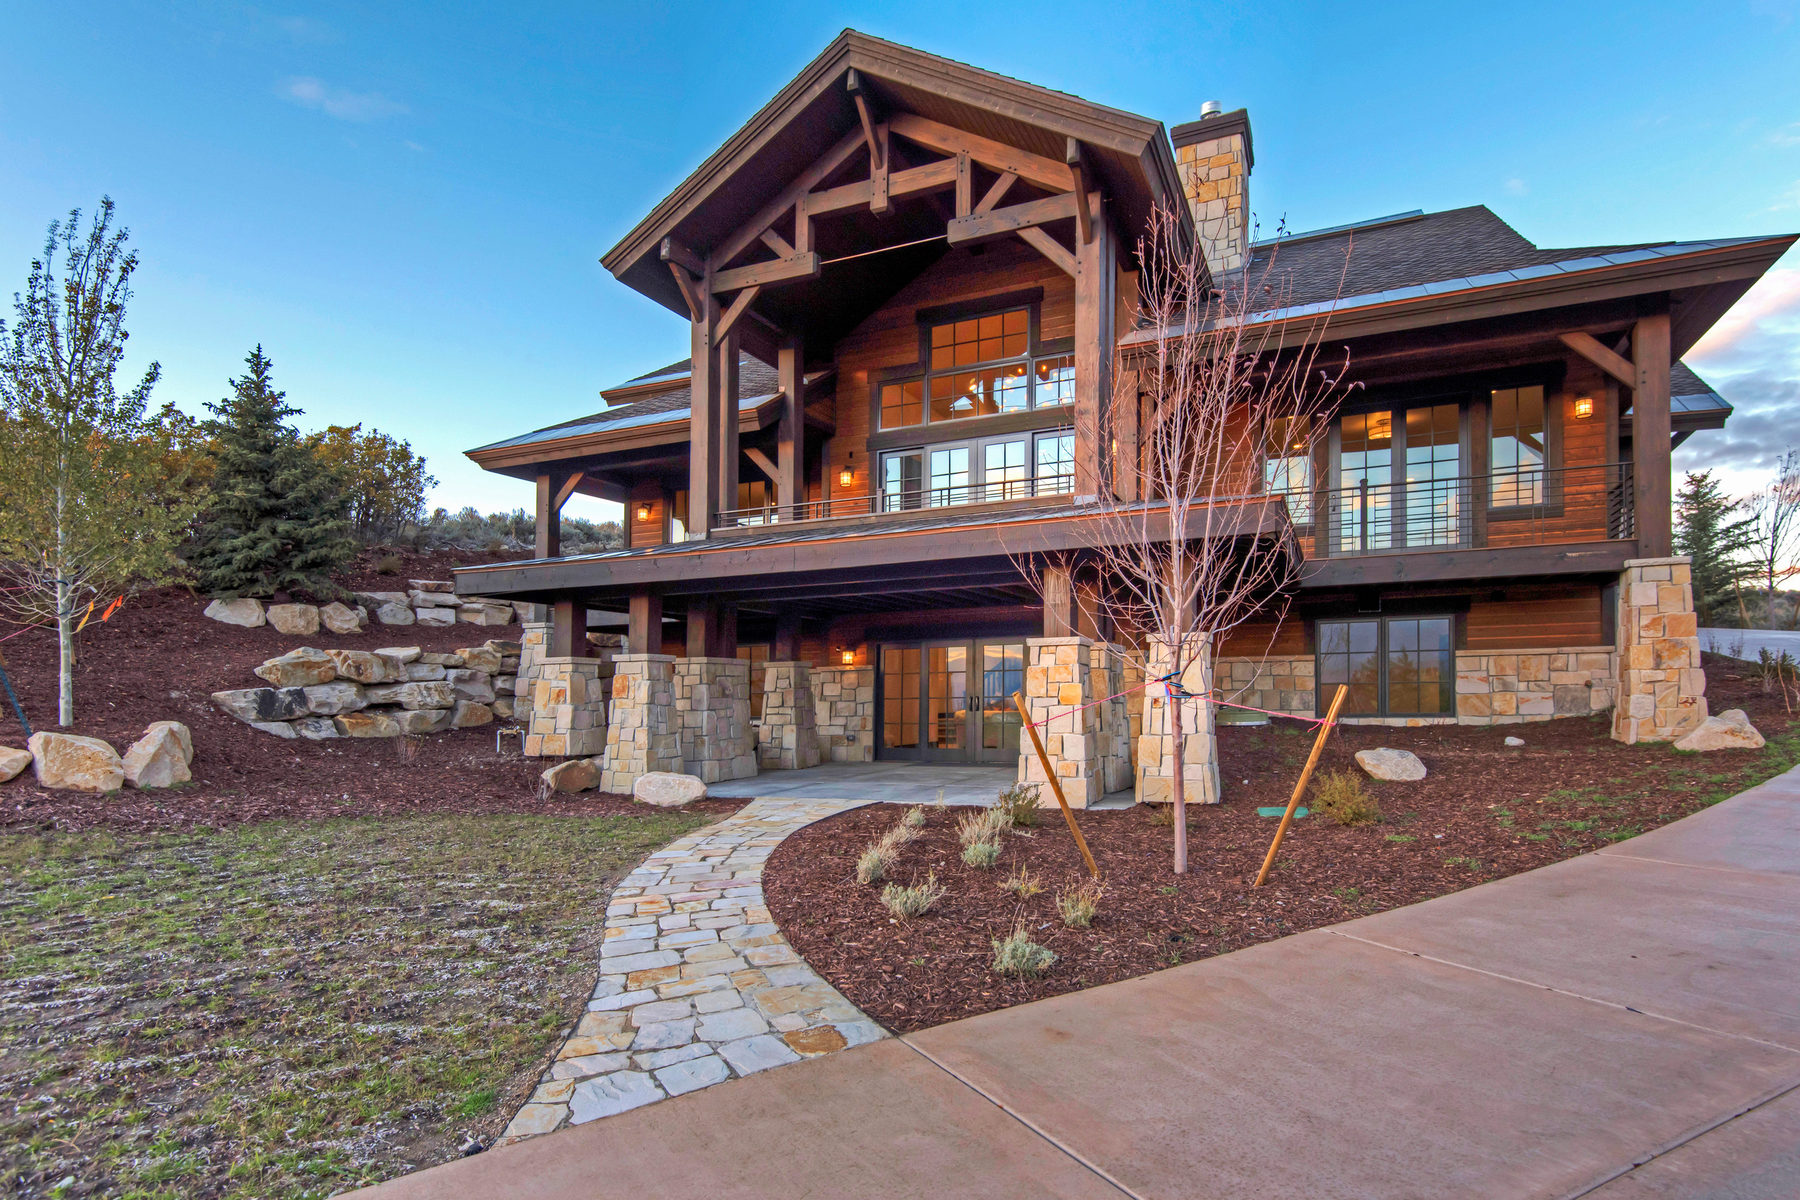 Casa Unifamiliar por un Venta en Promontory New Construction 8936 N Mountain Crest Rd Park City, Utah 84098 Estados Unidos